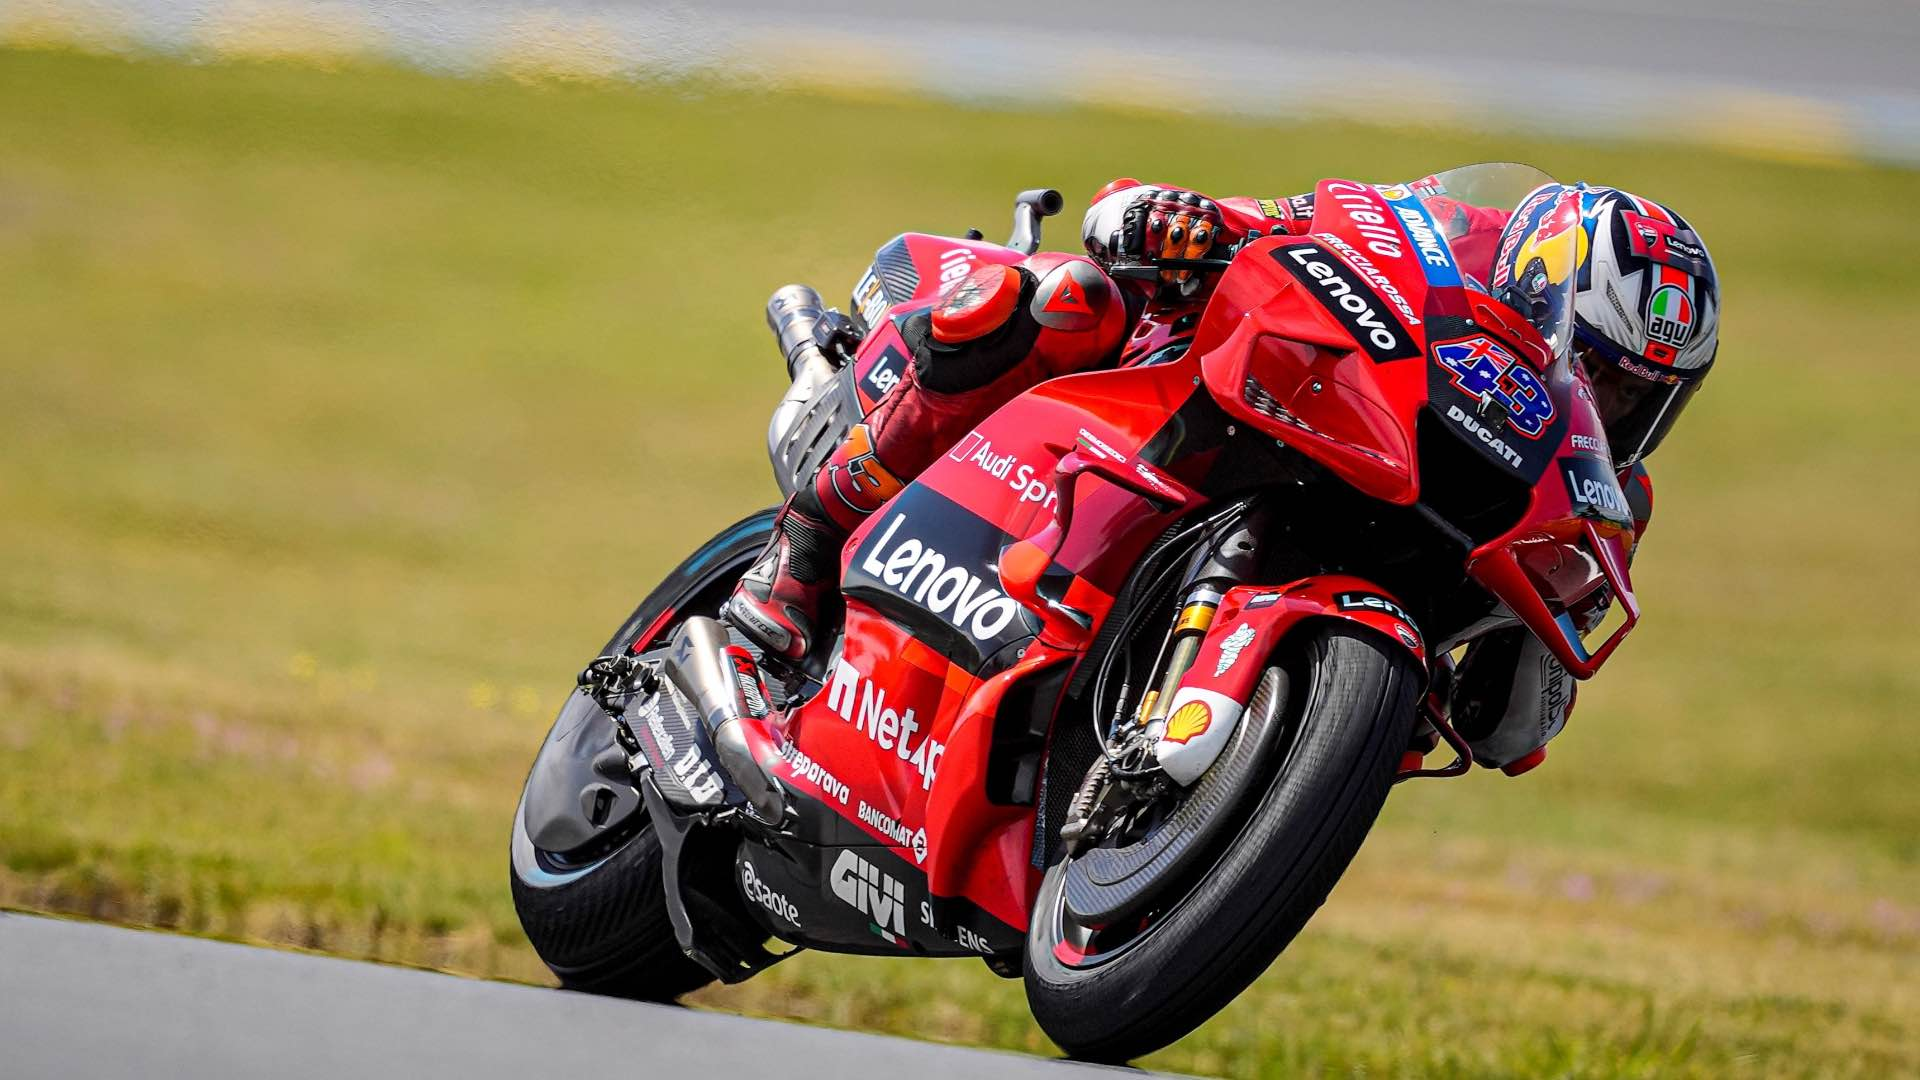 Jack Miller takes victory at the Grand Prix of France in Le Mans, the second consecutive success for the Aussie rider.